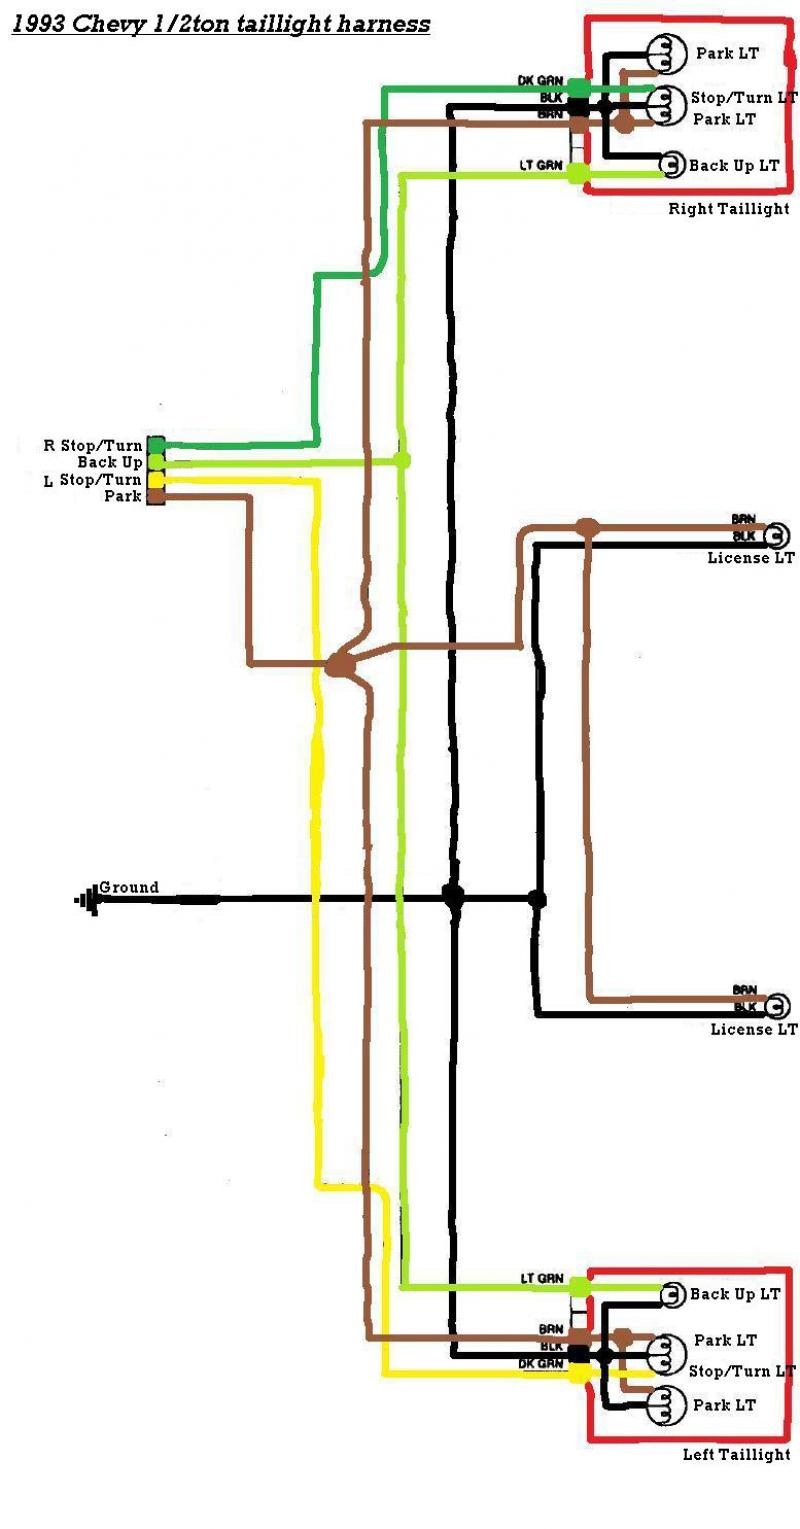 Gm Trailer Wiring Color Code | Wiring Library - Semi Trailer Tail Light Wiring Diagram